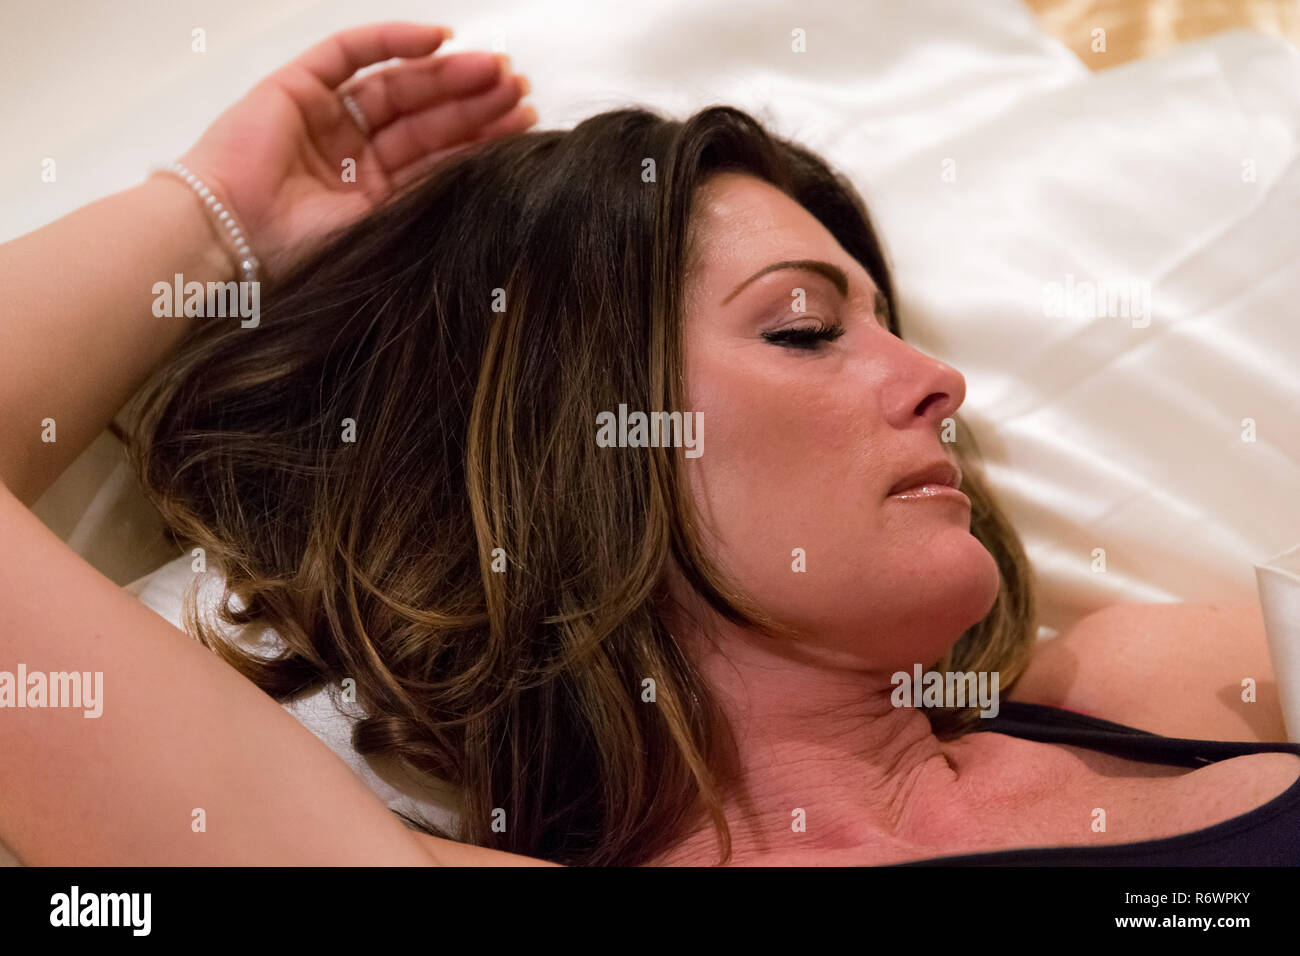 Woman in bed - Stock Image